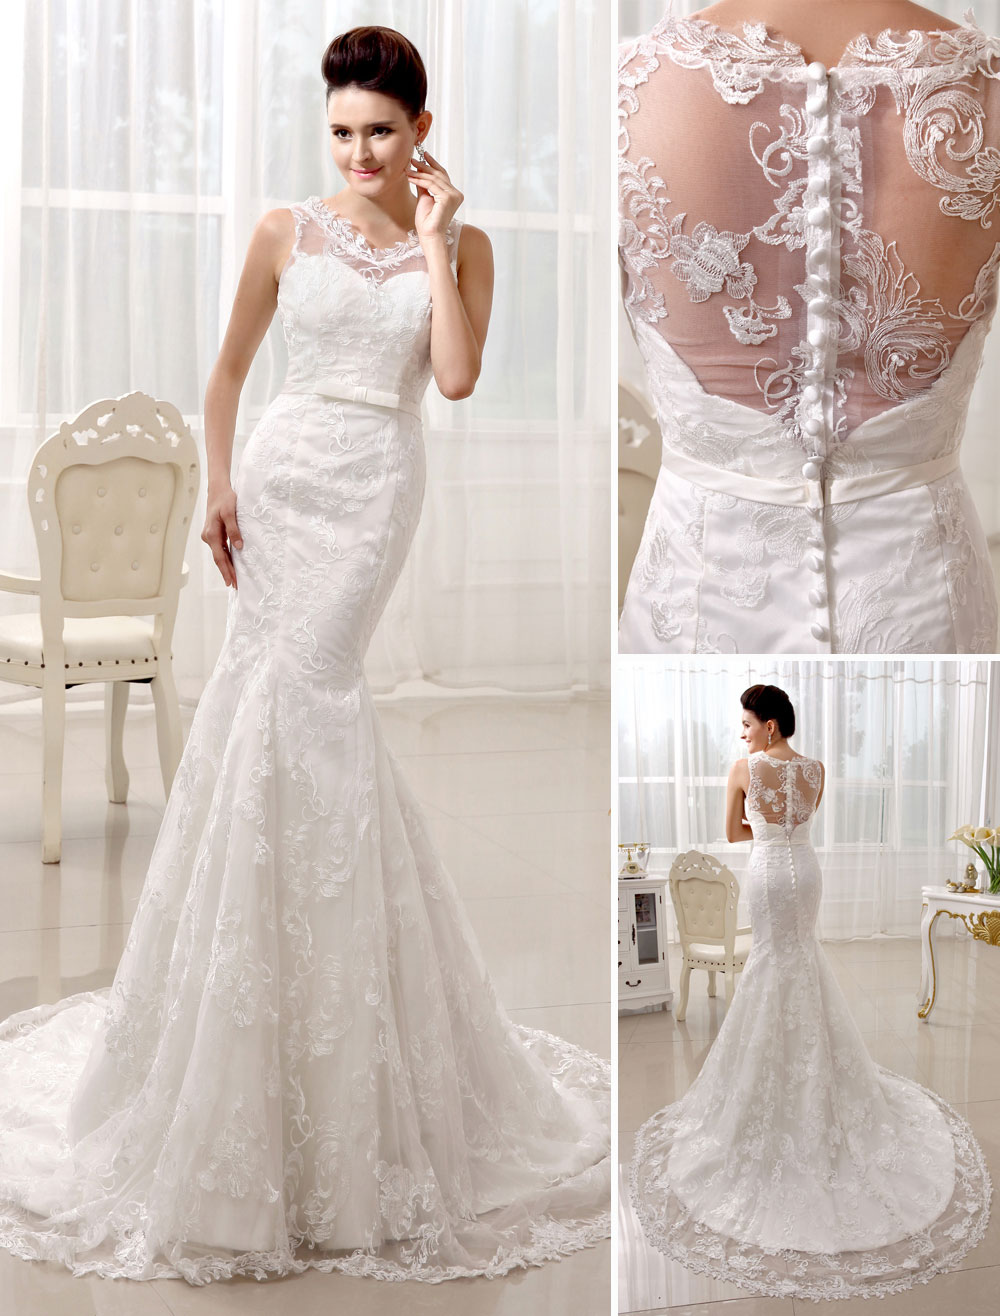 Court Train Ivory Wedding Dress For Bride with V-Neck Mermaid Buttons